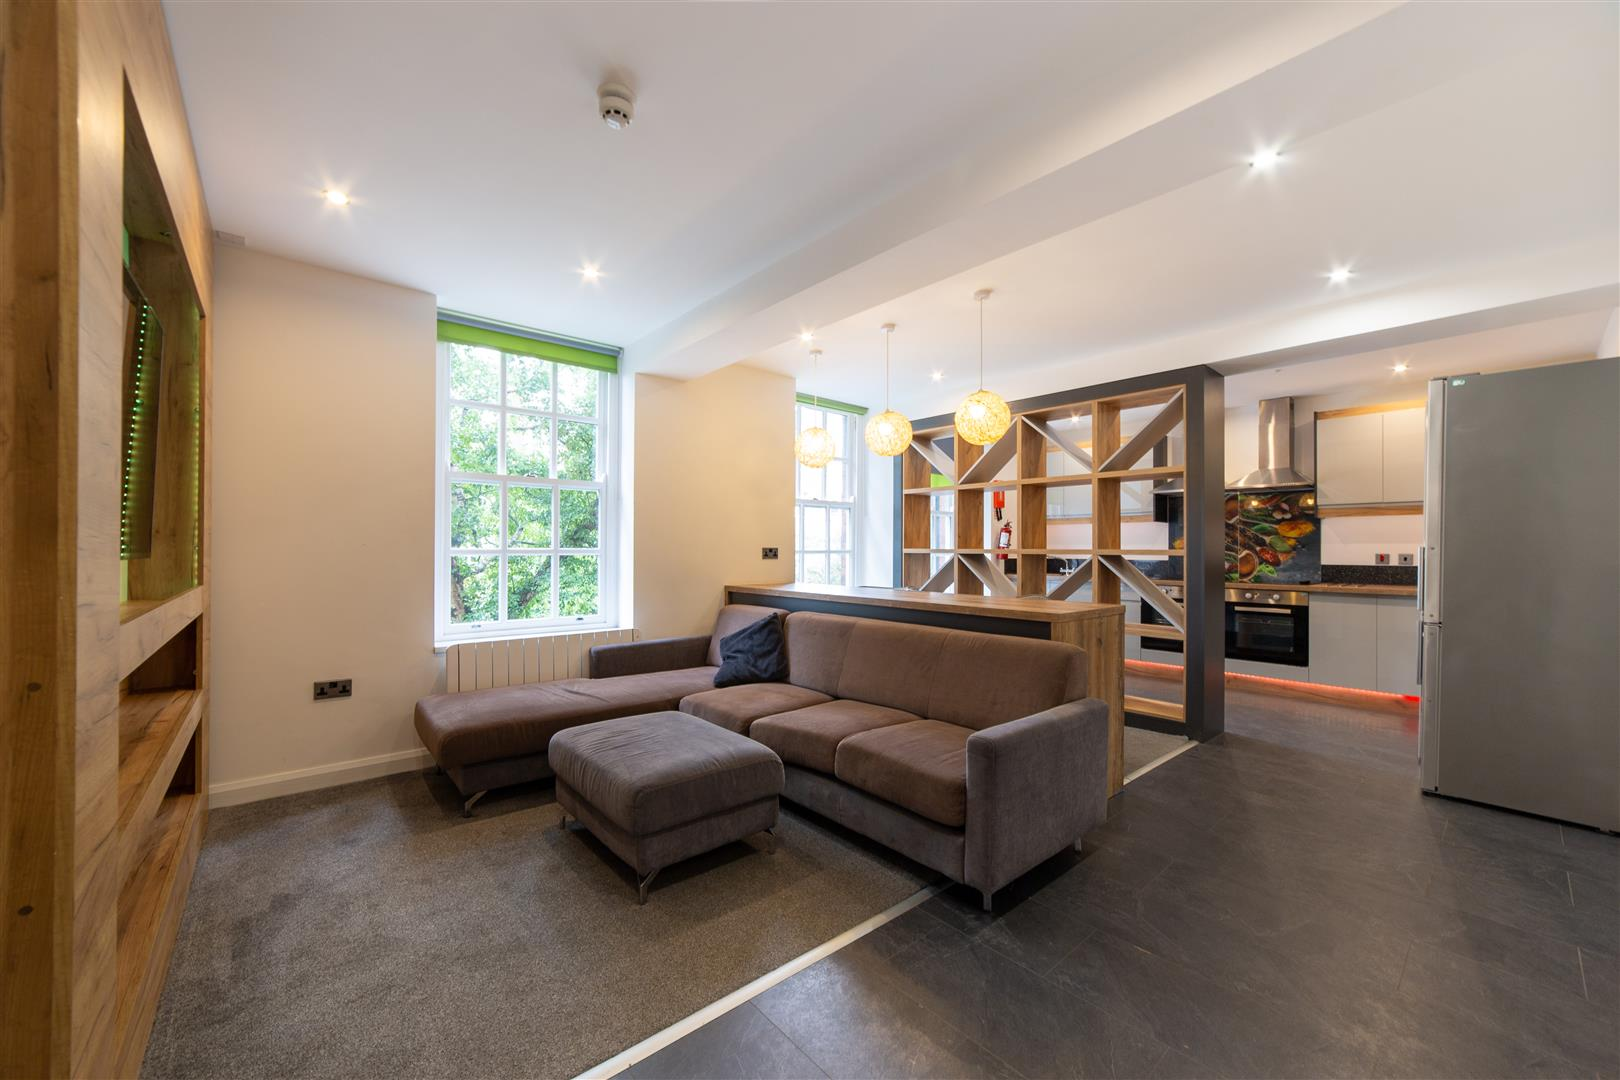 7 bed apartment to rent in Jesmond, NE2 4DN, NE2